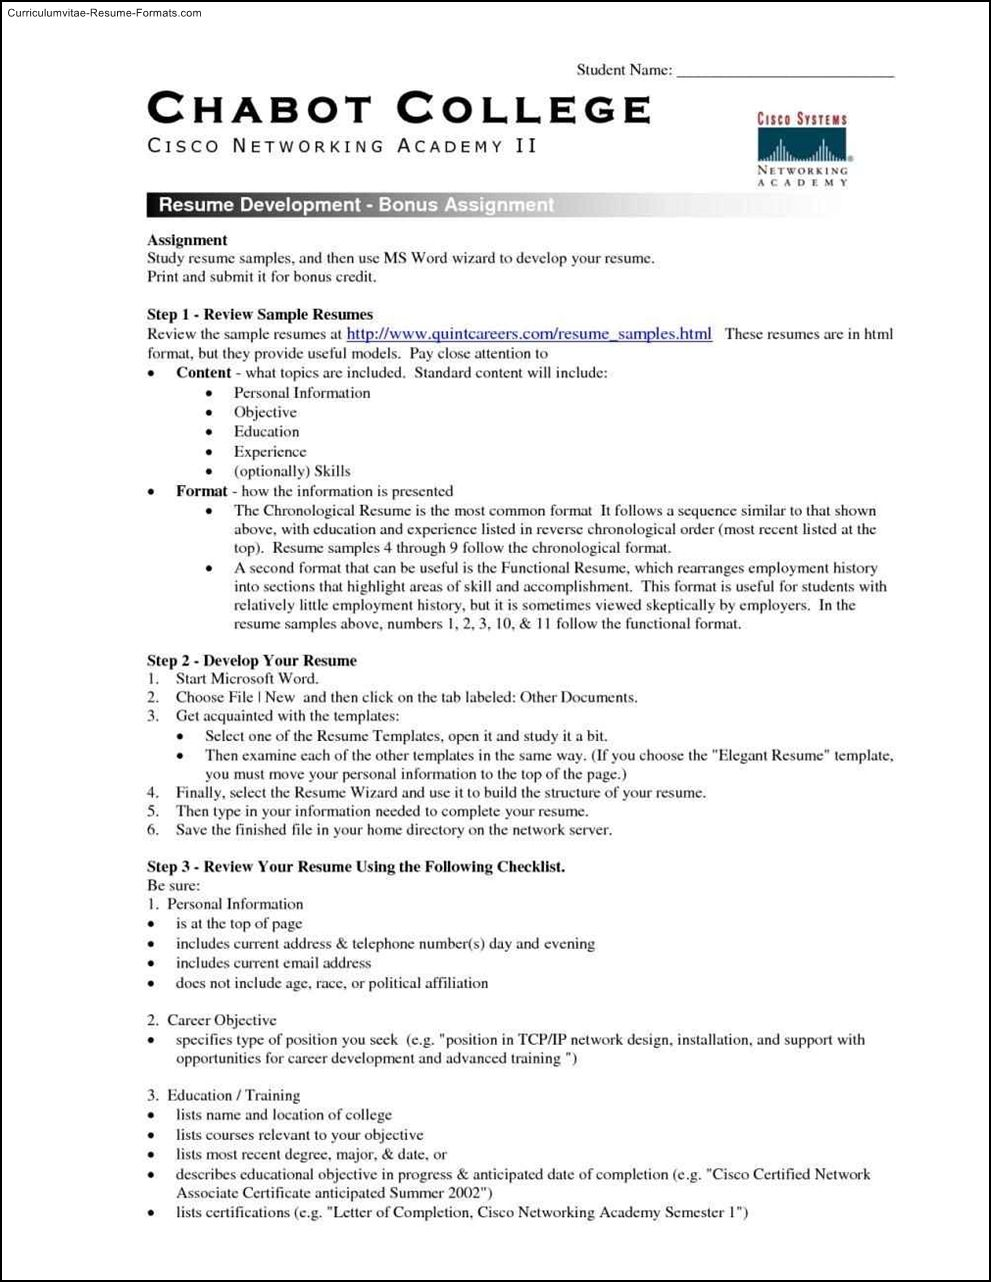 College Student Resume Free Resume Templates For Students Inspiration Decoration College